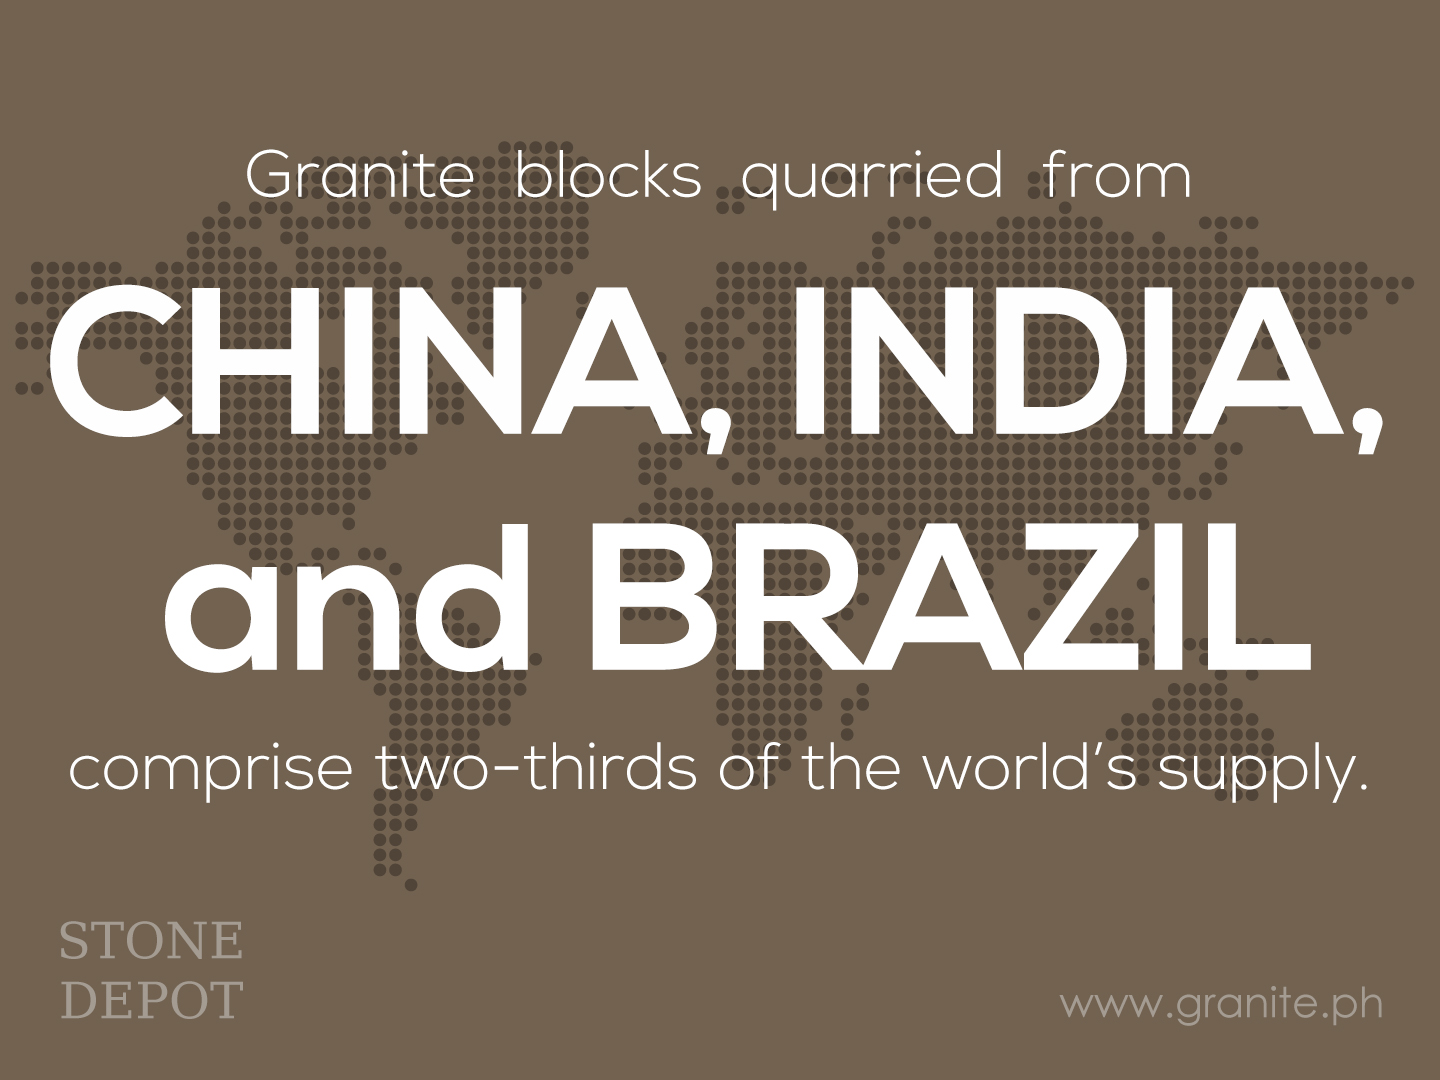 Granite blocks quarried from China, India, and Brazil comprise two-thirds of the world's supply